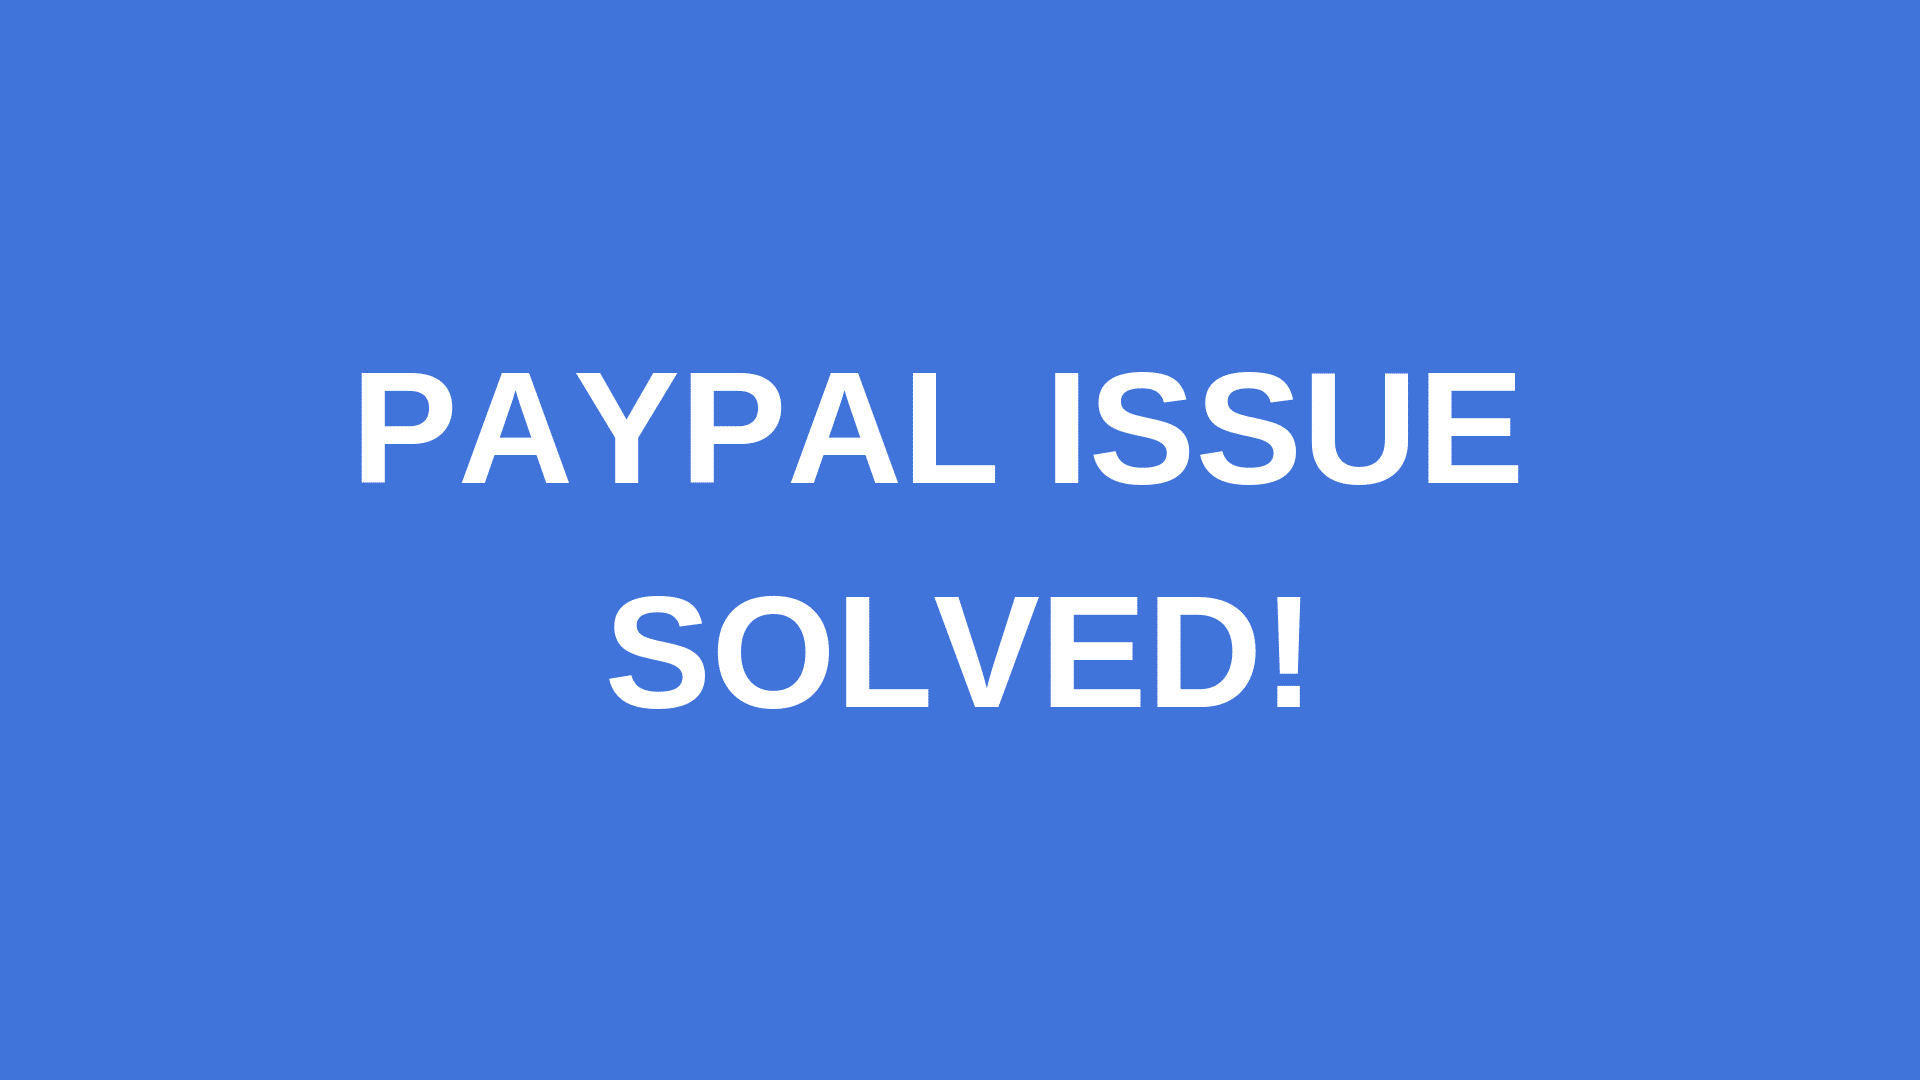 Paypal, Sorry, we weren't able to set up preapproved payments at this time